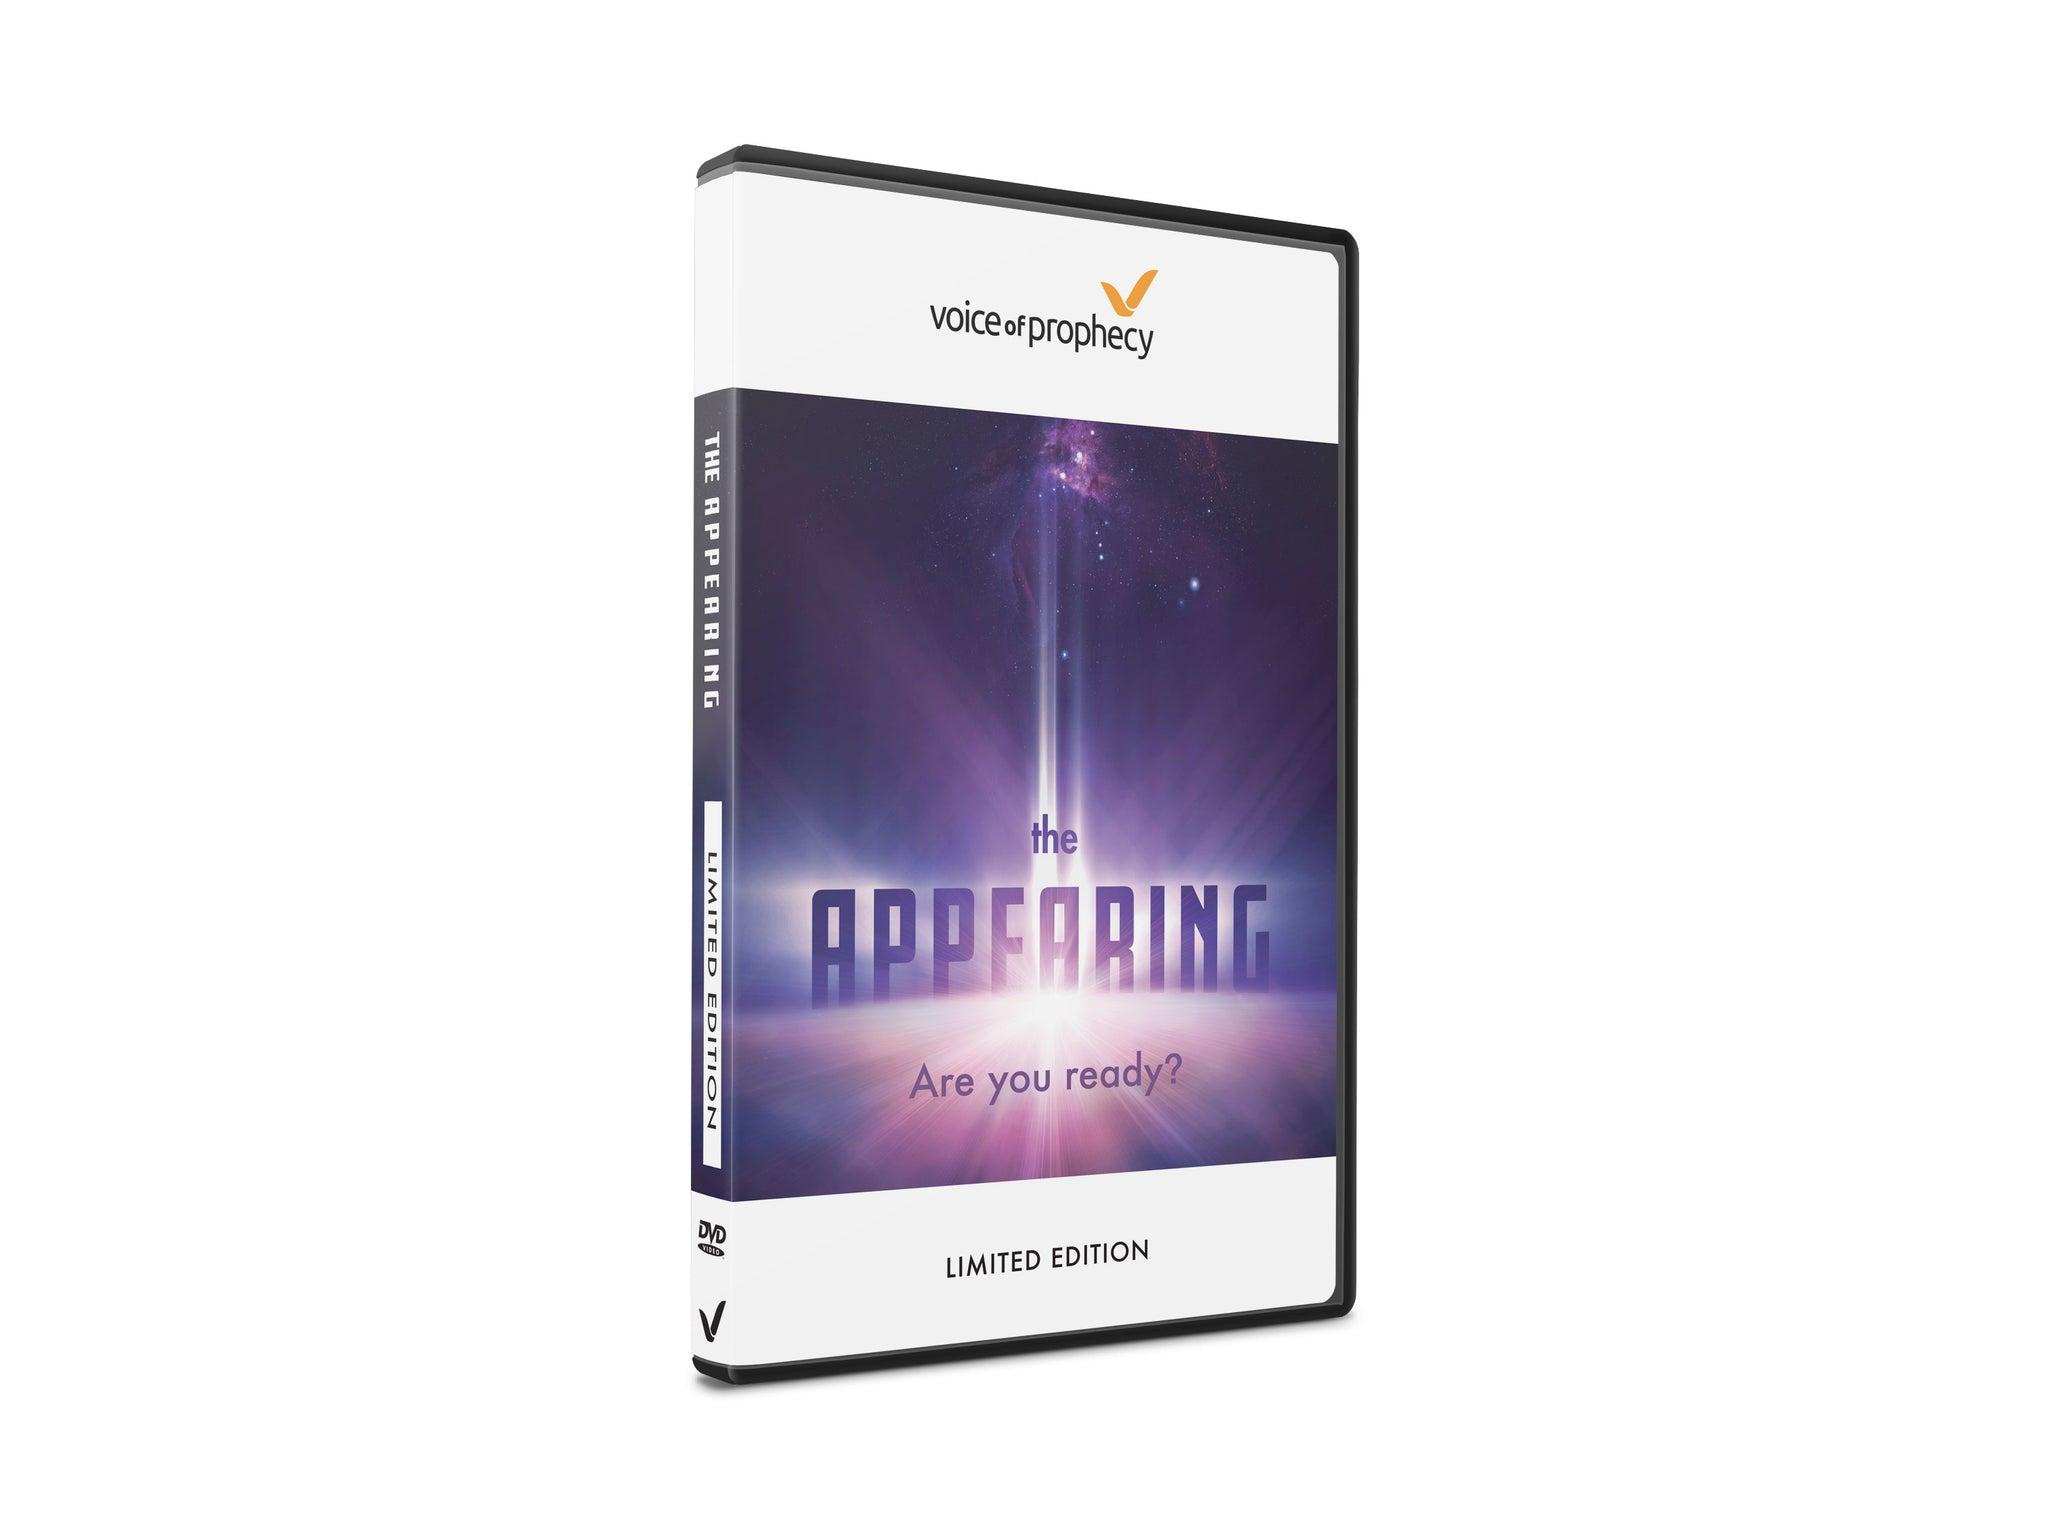 The Appearing DVD - Available Now!